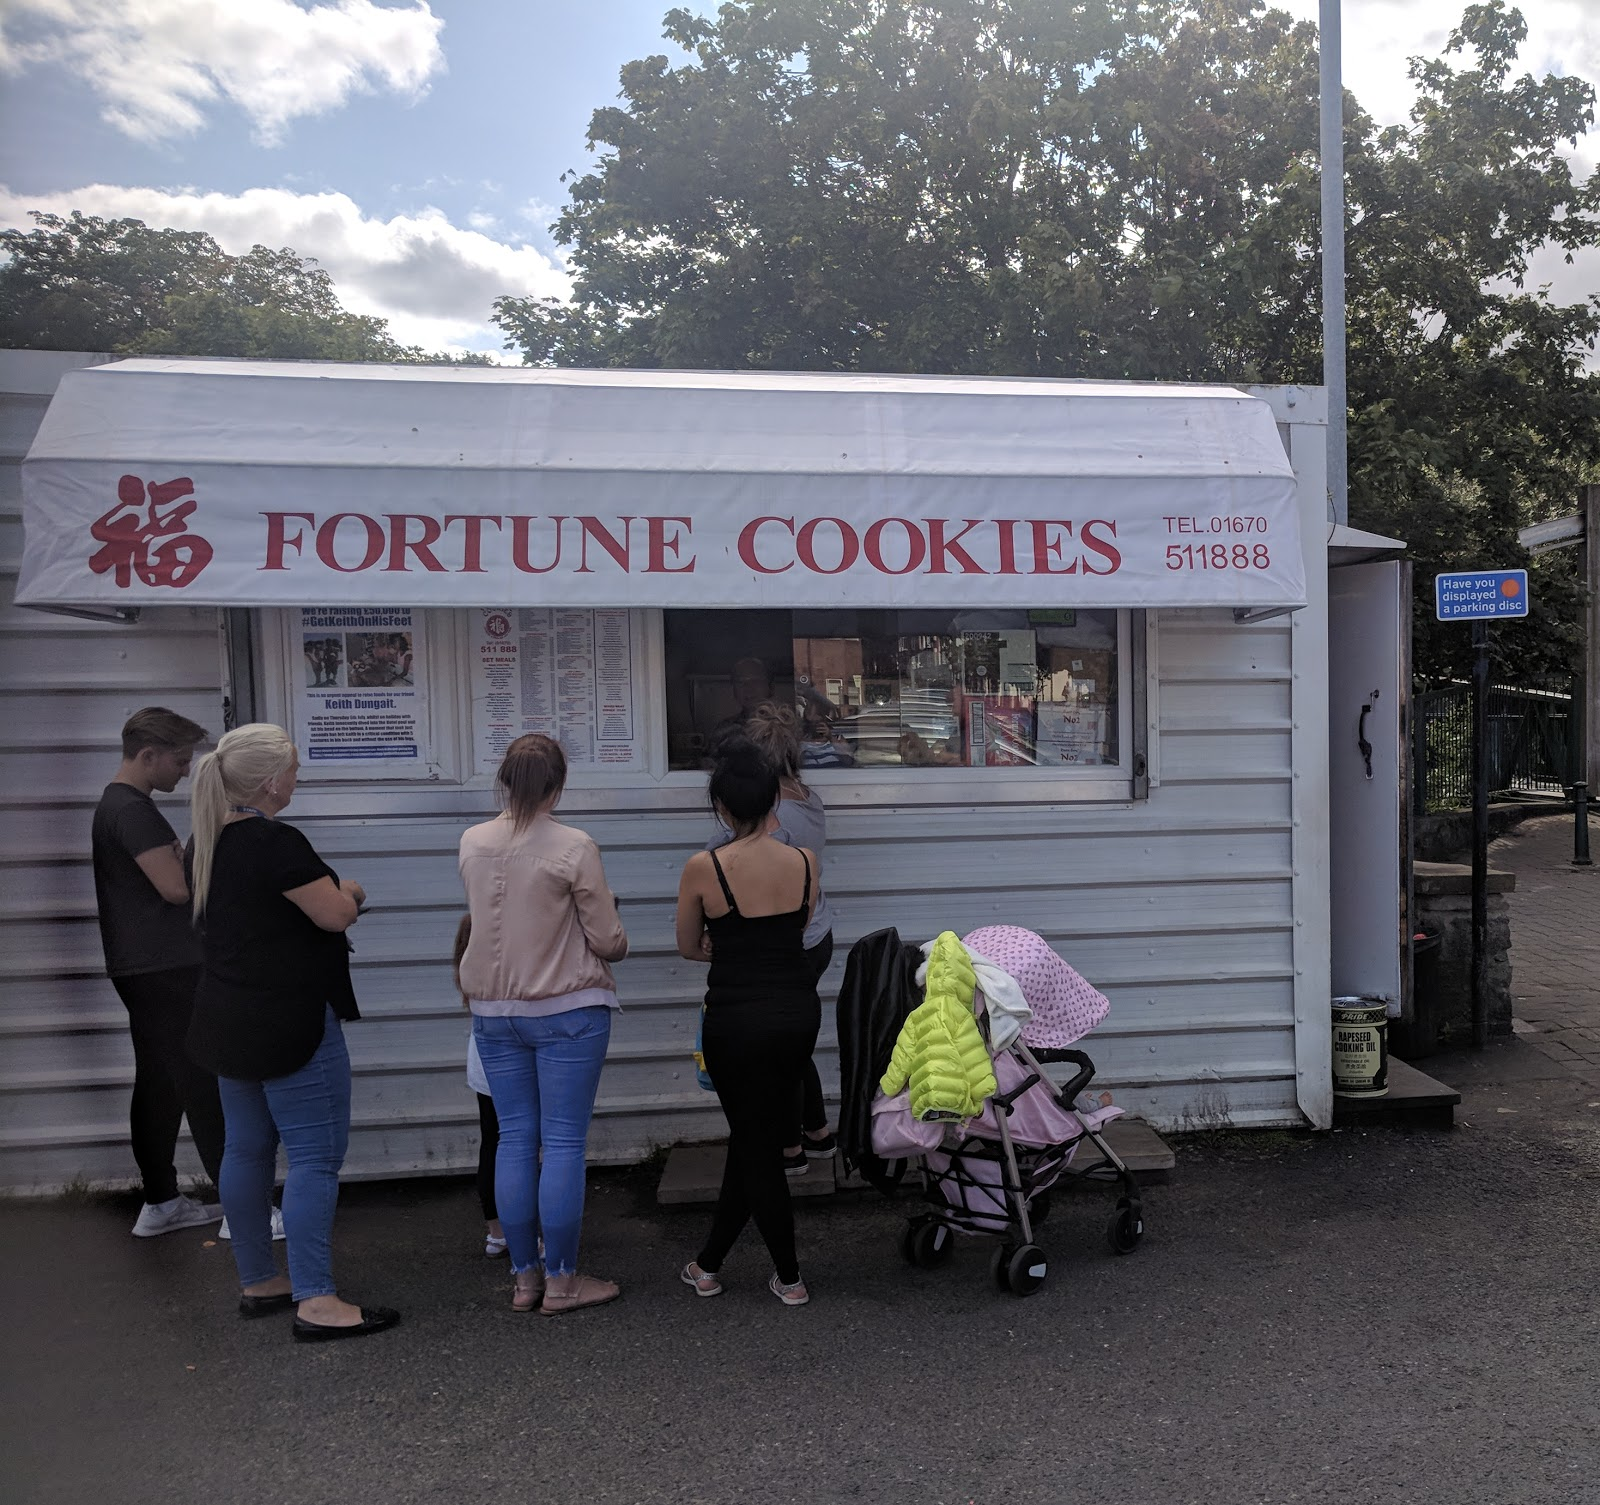 Why you must visit the Fortune Cookies Chinese Van in Morpeth  - van location in car park